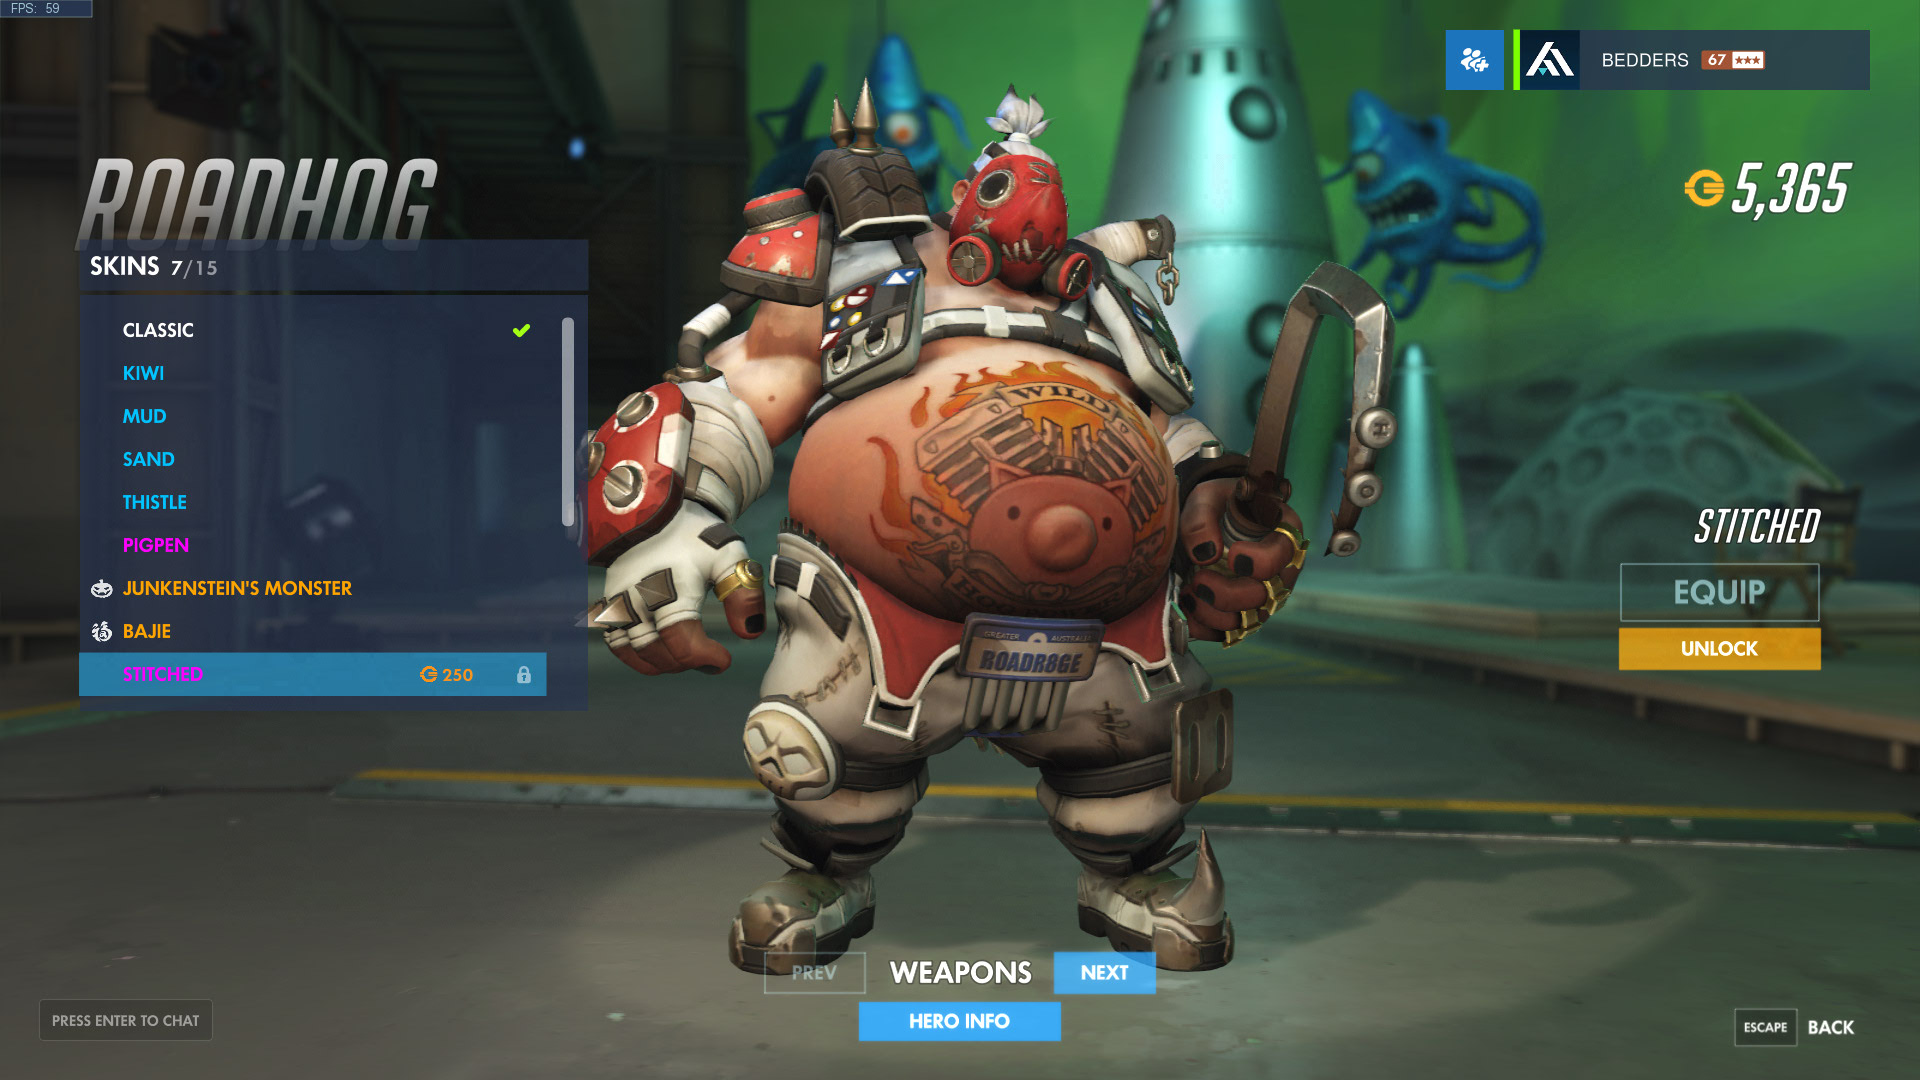 Overwatch: Roadhog guide - Tips, tricks and strategy advice   Metabomb